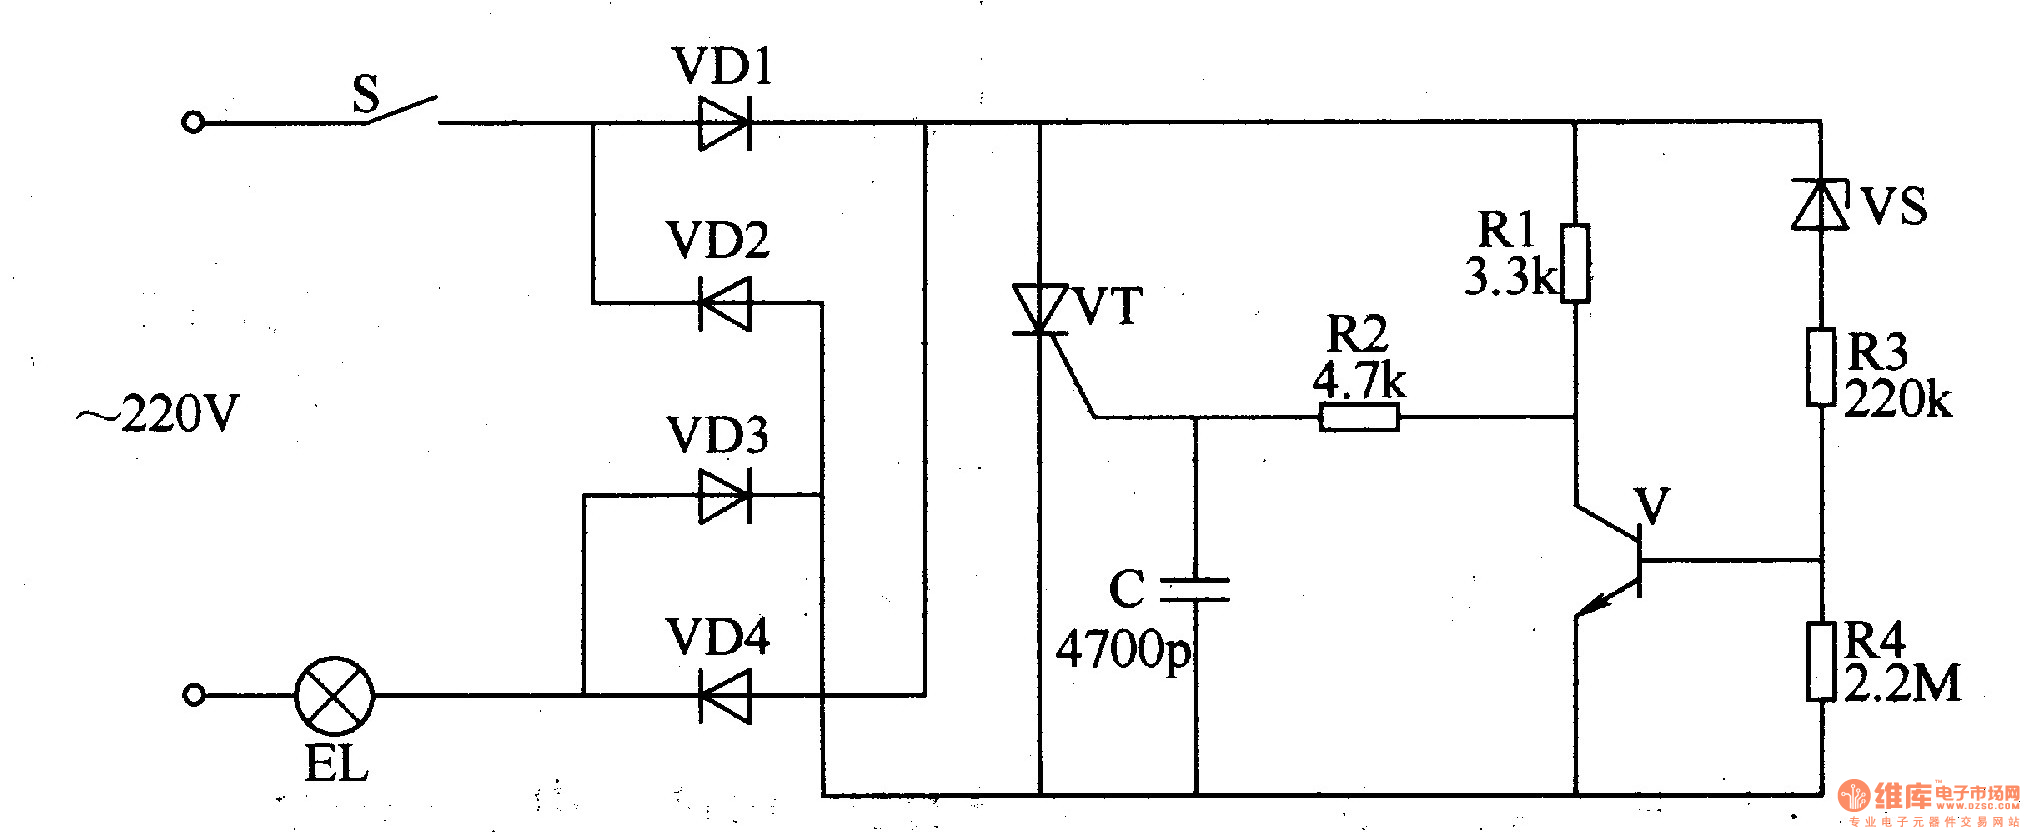 diagram circuit rl diode voltage regulator diagram